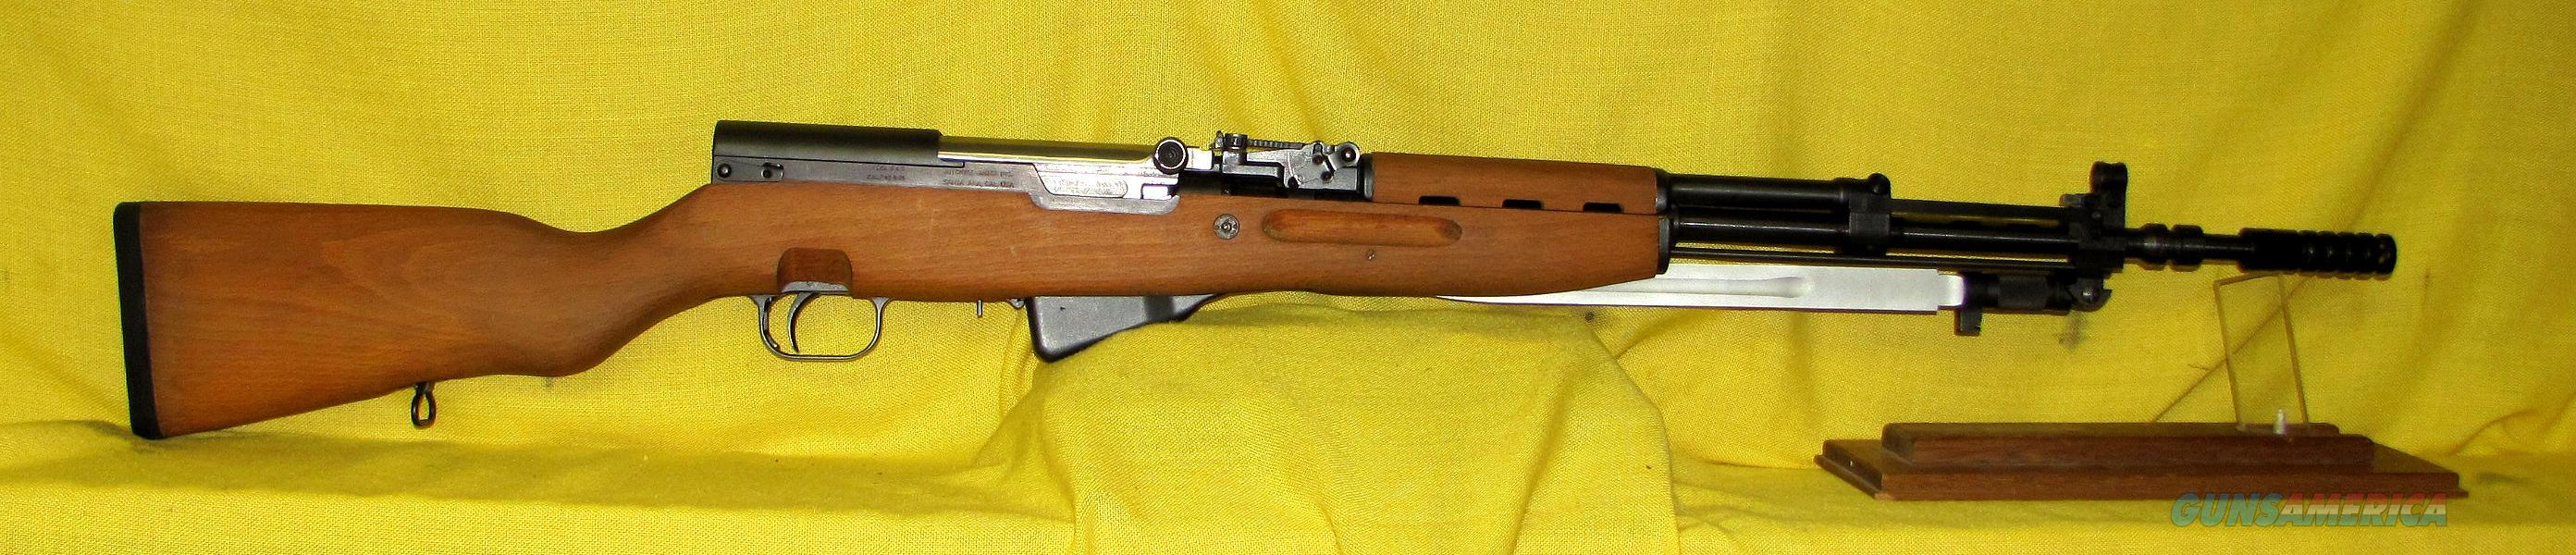 "YUGO 59/56 SKS 7.62X39 24"" BARREL  Guns > Rifles > SKS Rifles"